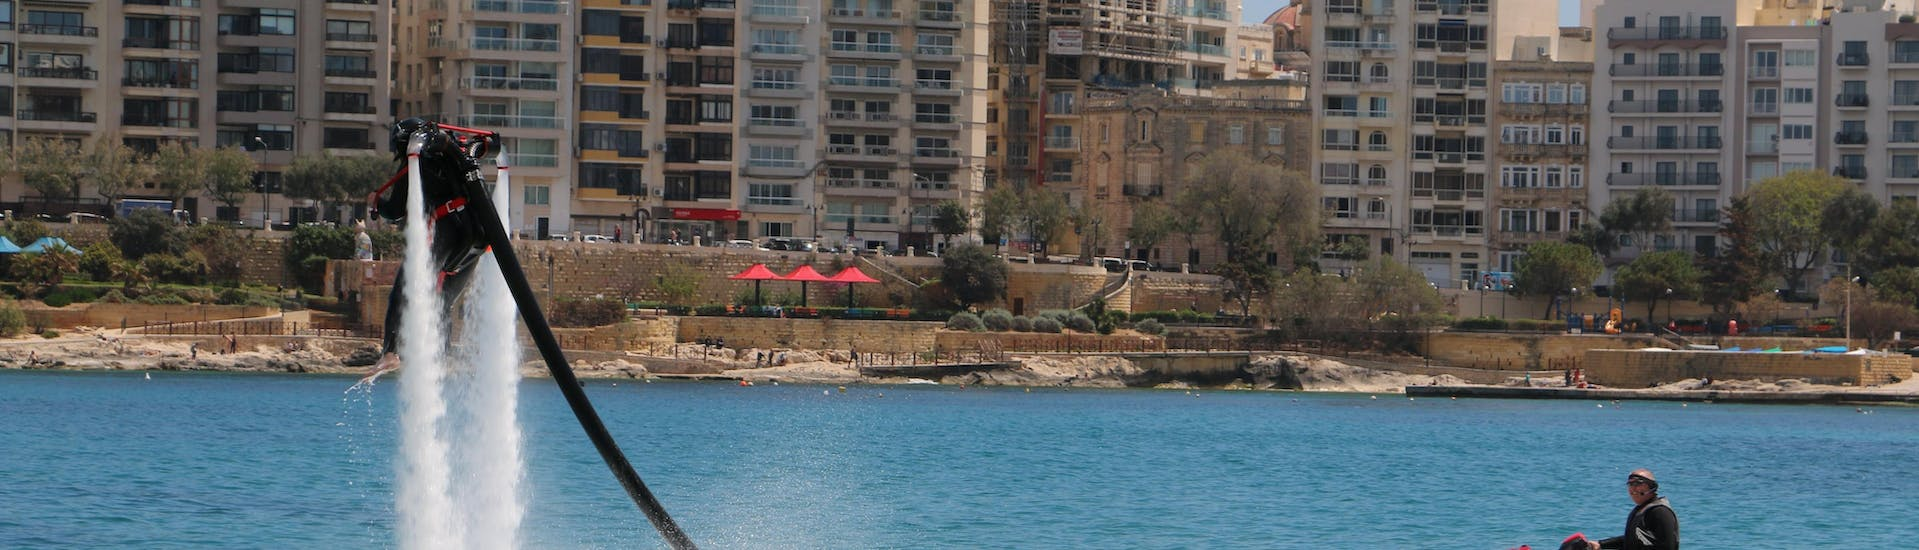 Flyboarding and Jetpack - Spinola Bay